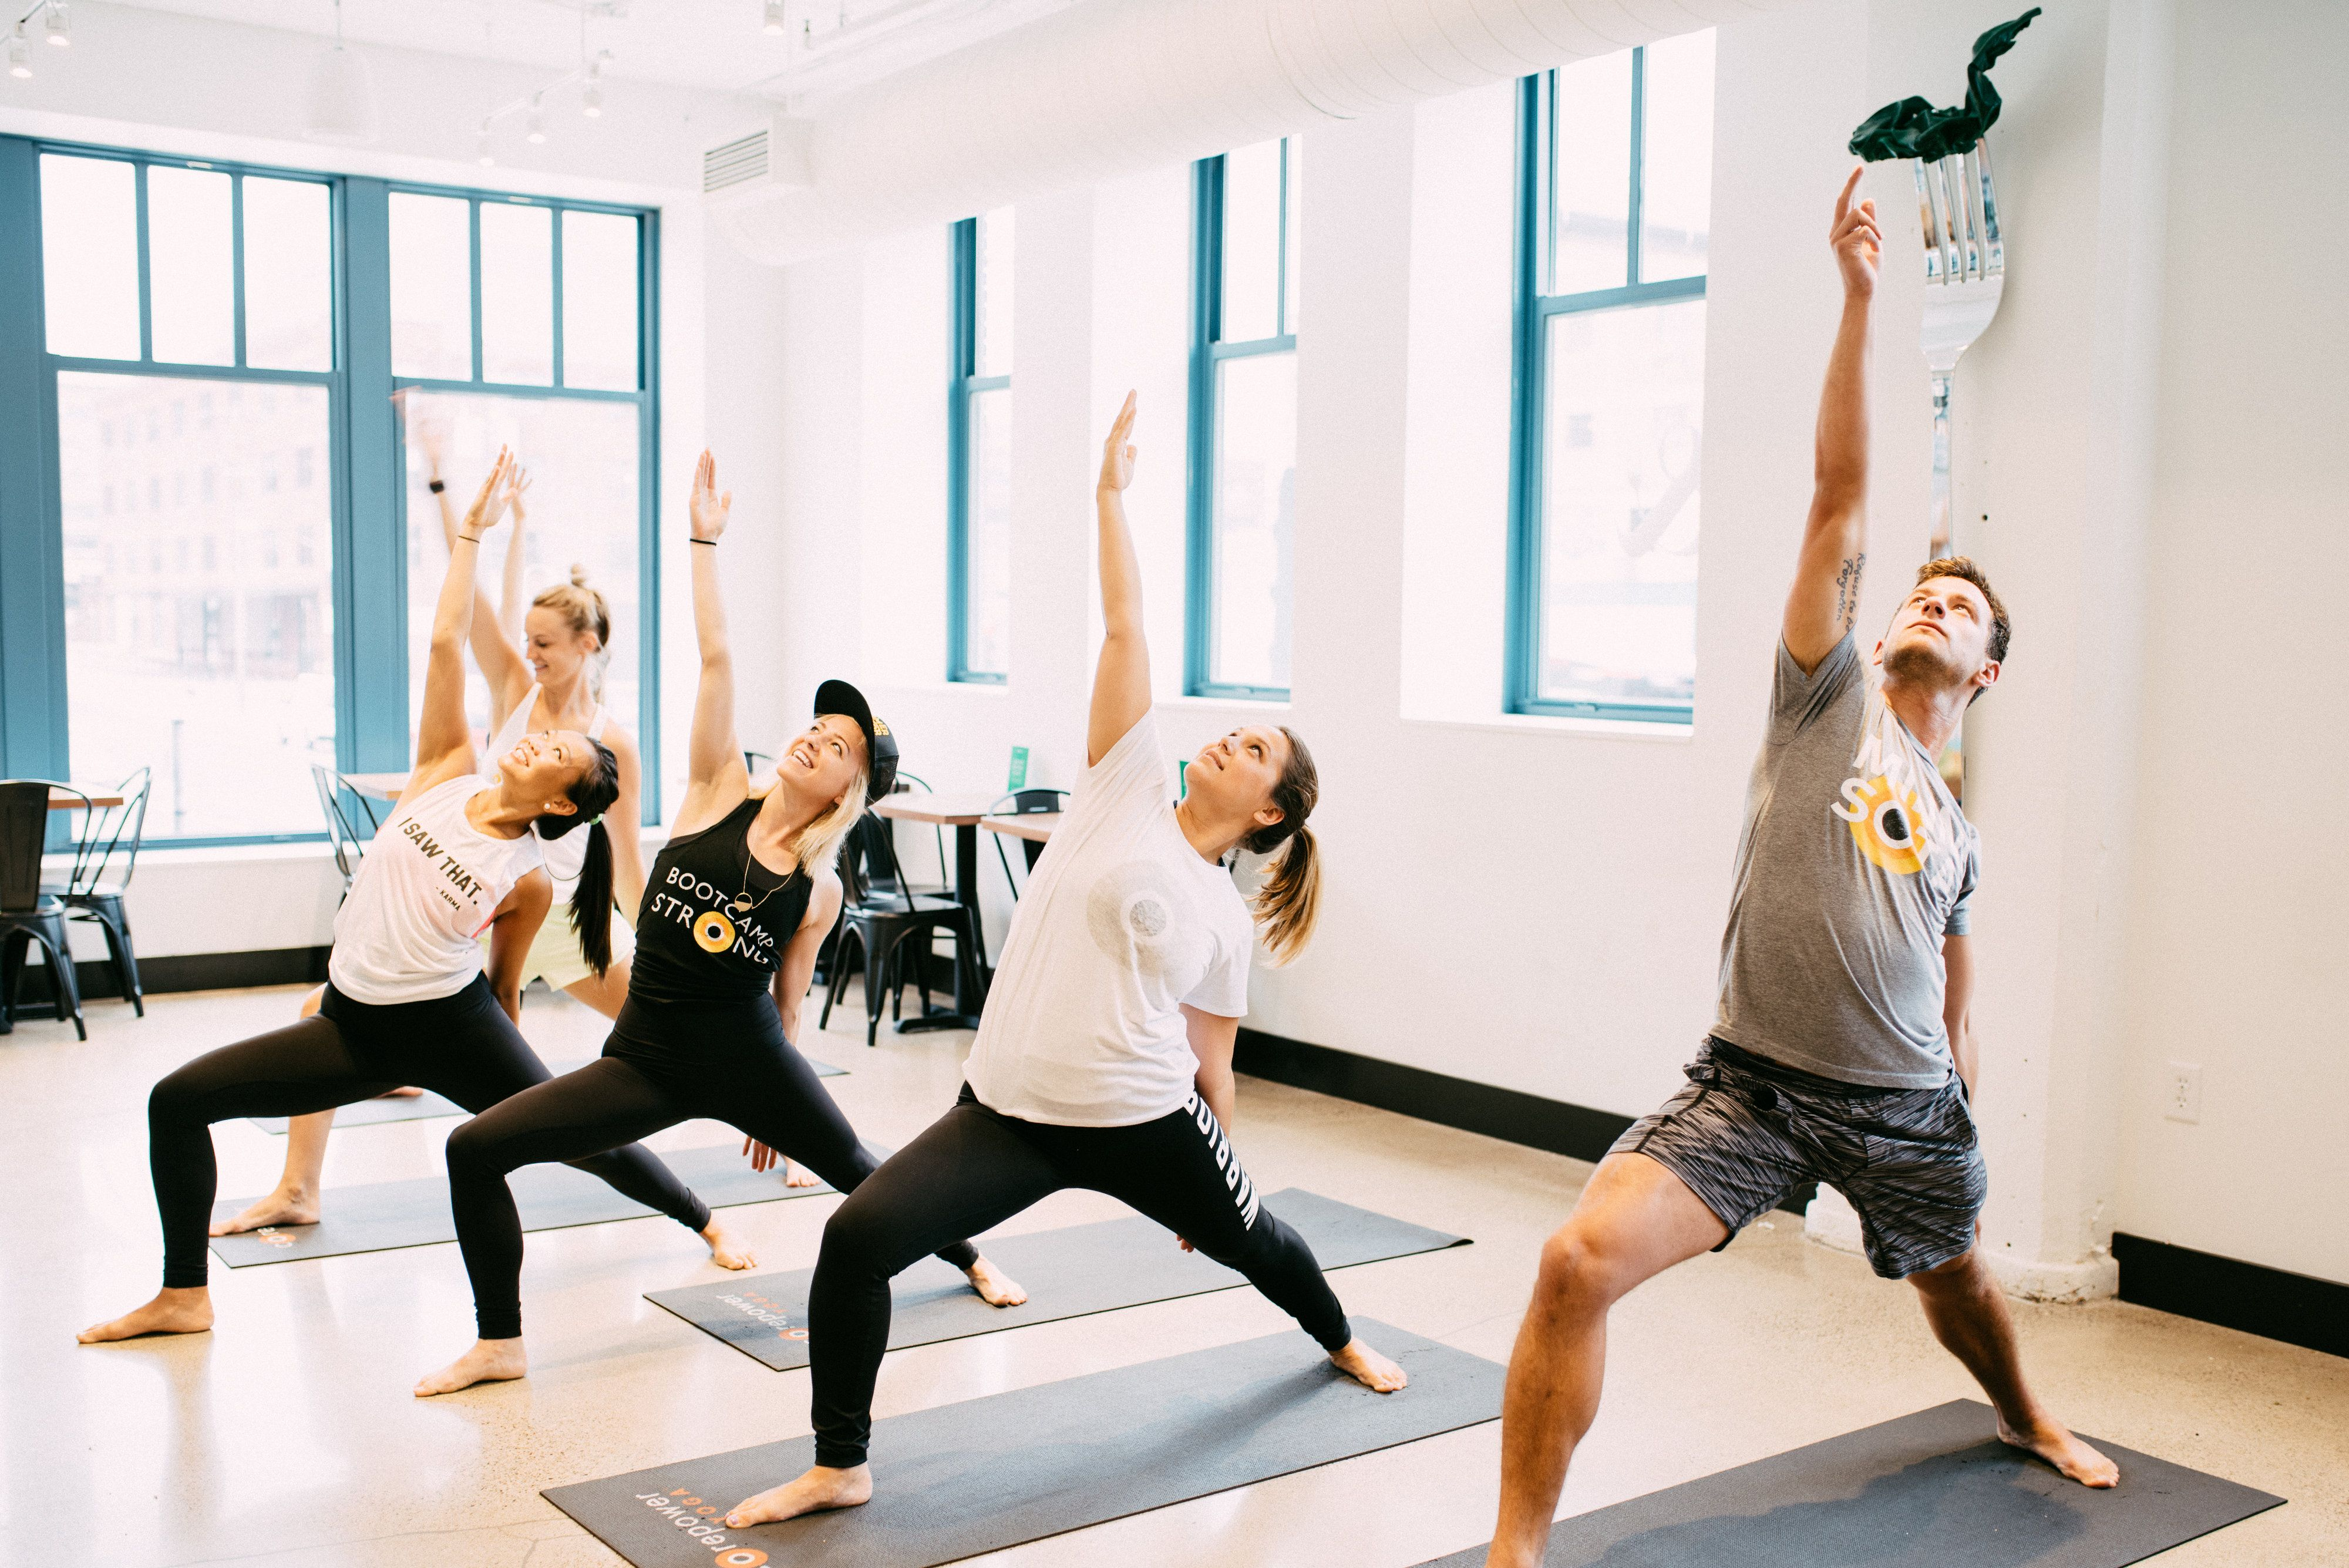 Reach Your Fitness Goals With Free Minneapolis Classes Fitness Fitness Goals Event